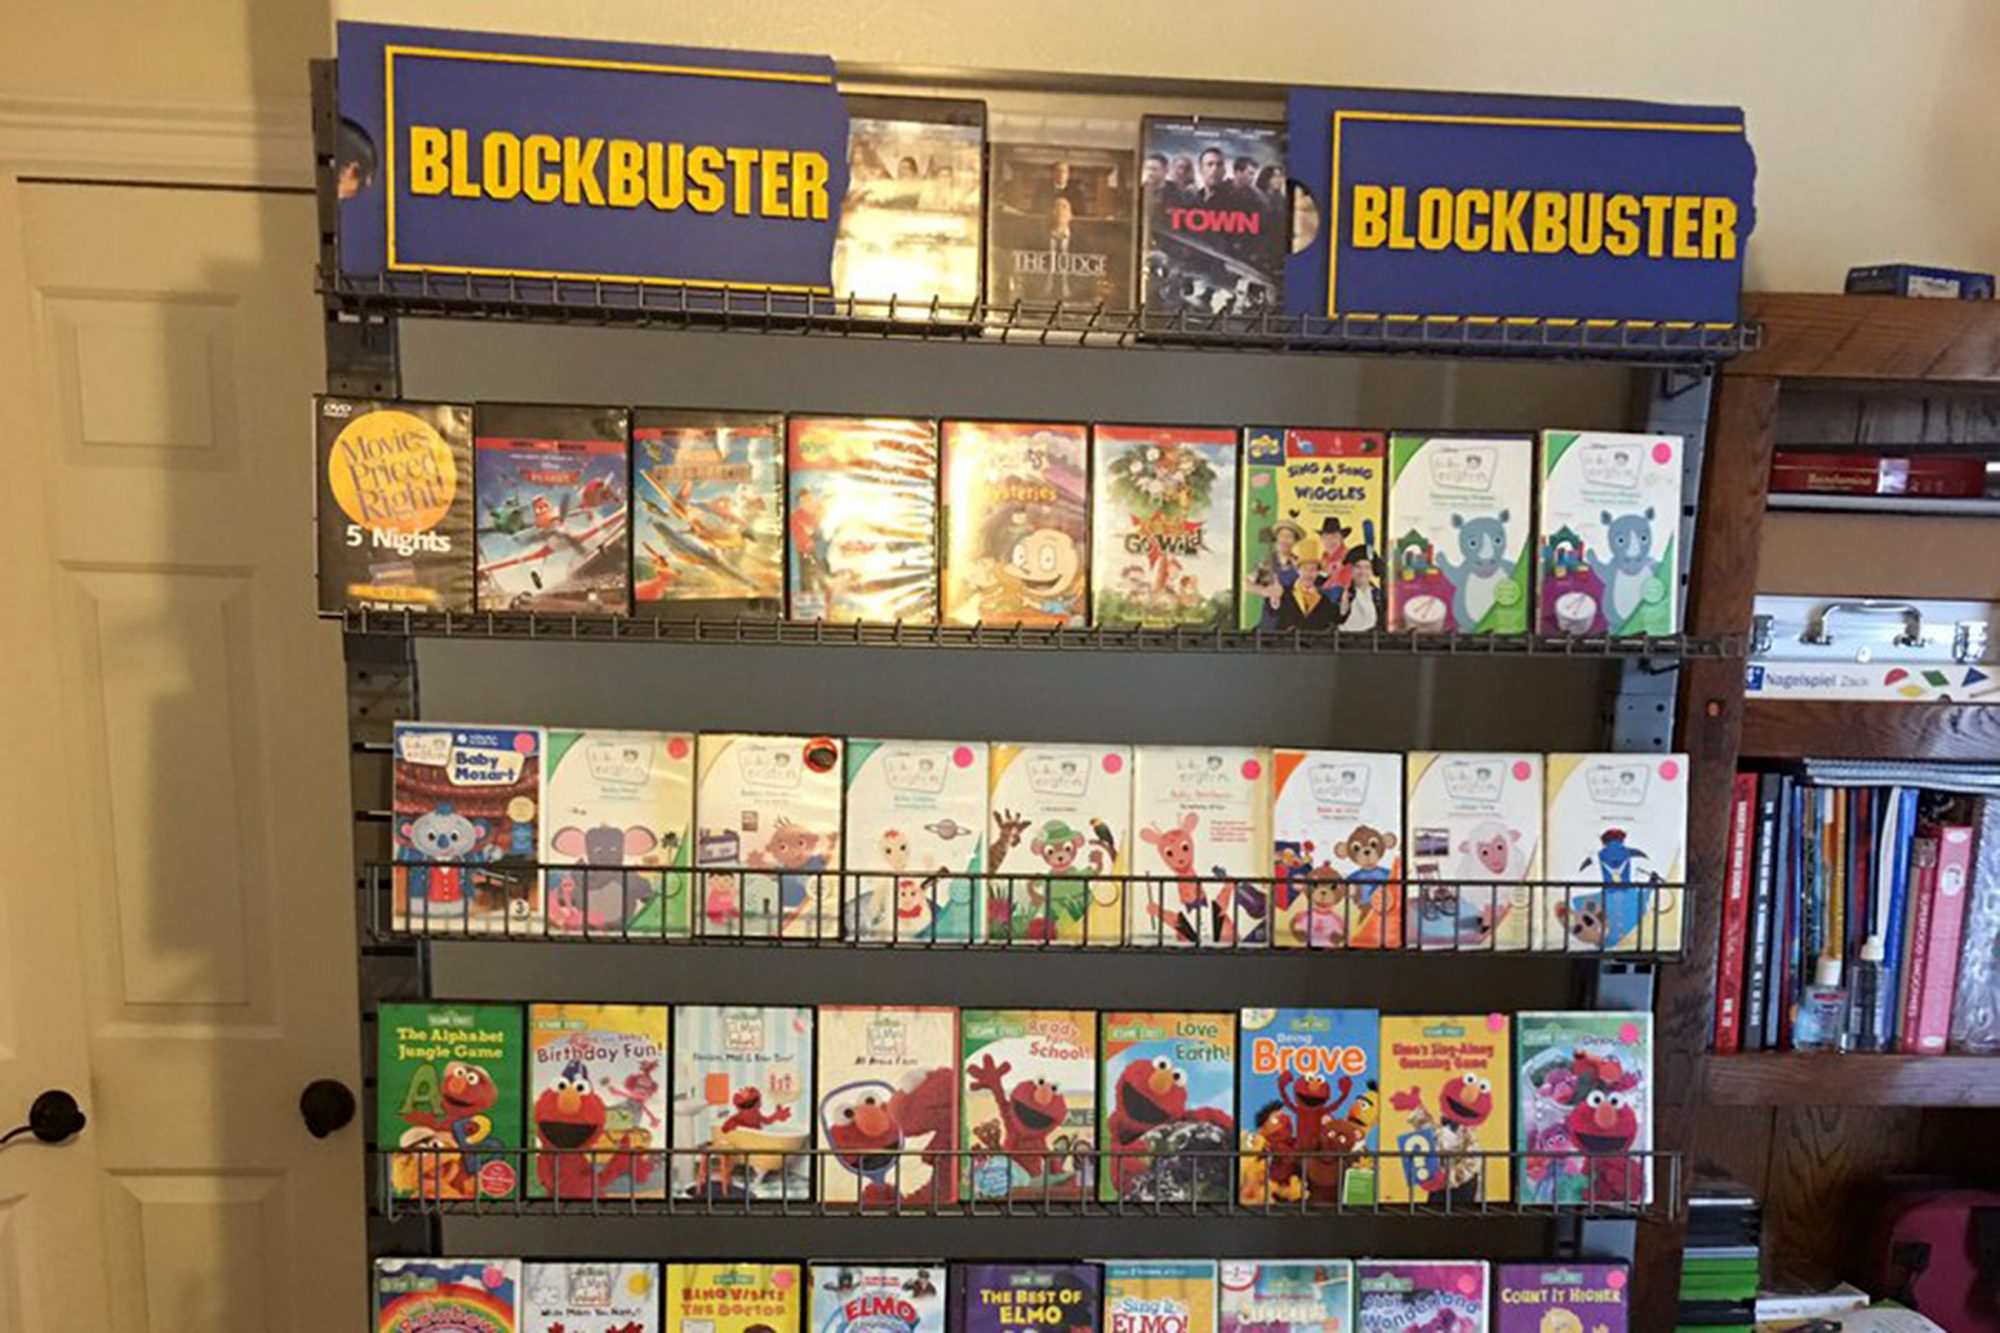 Blockbuster library